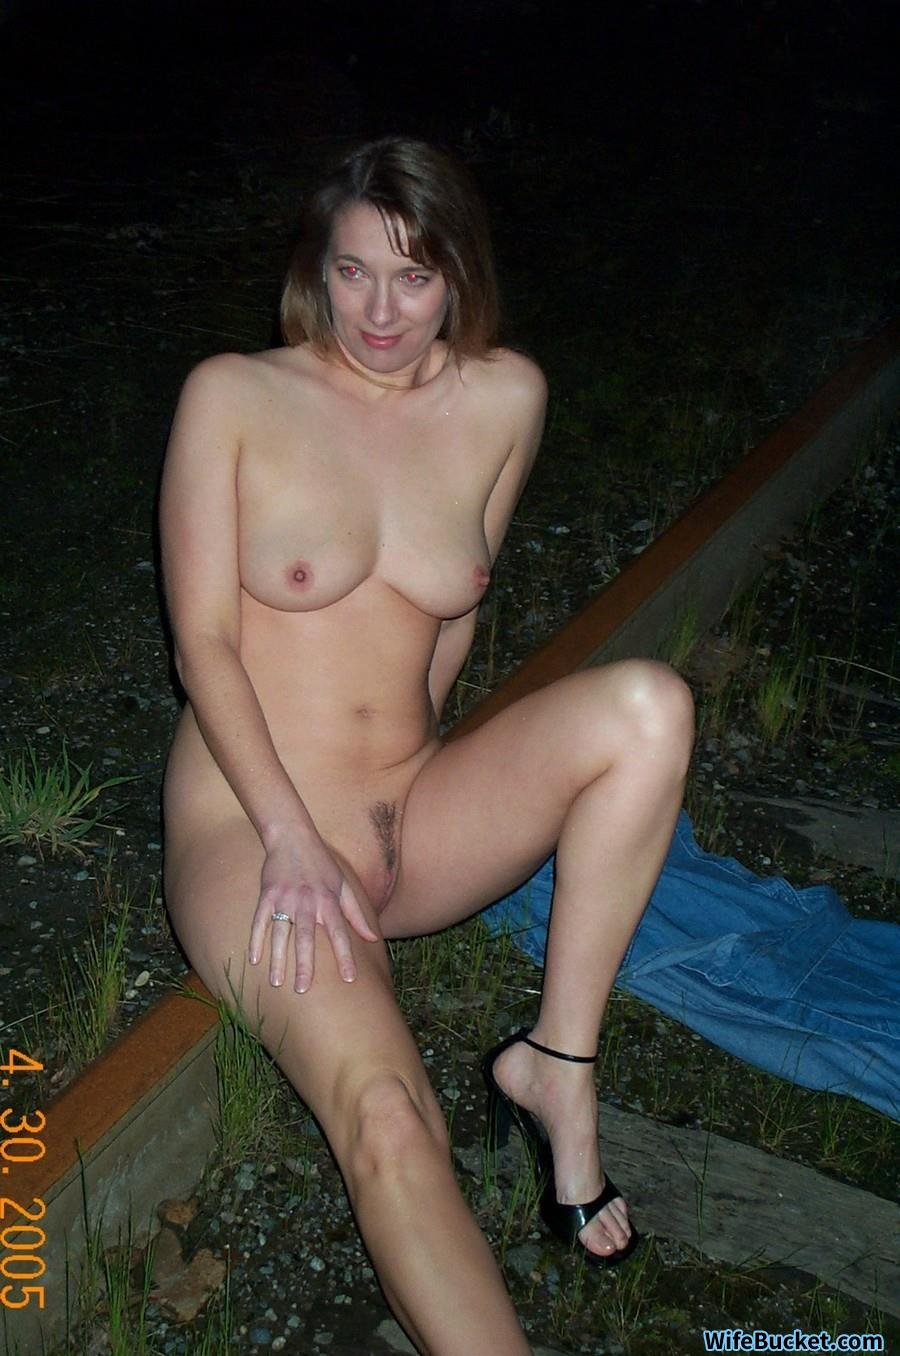 Old wife nude pics photo 4